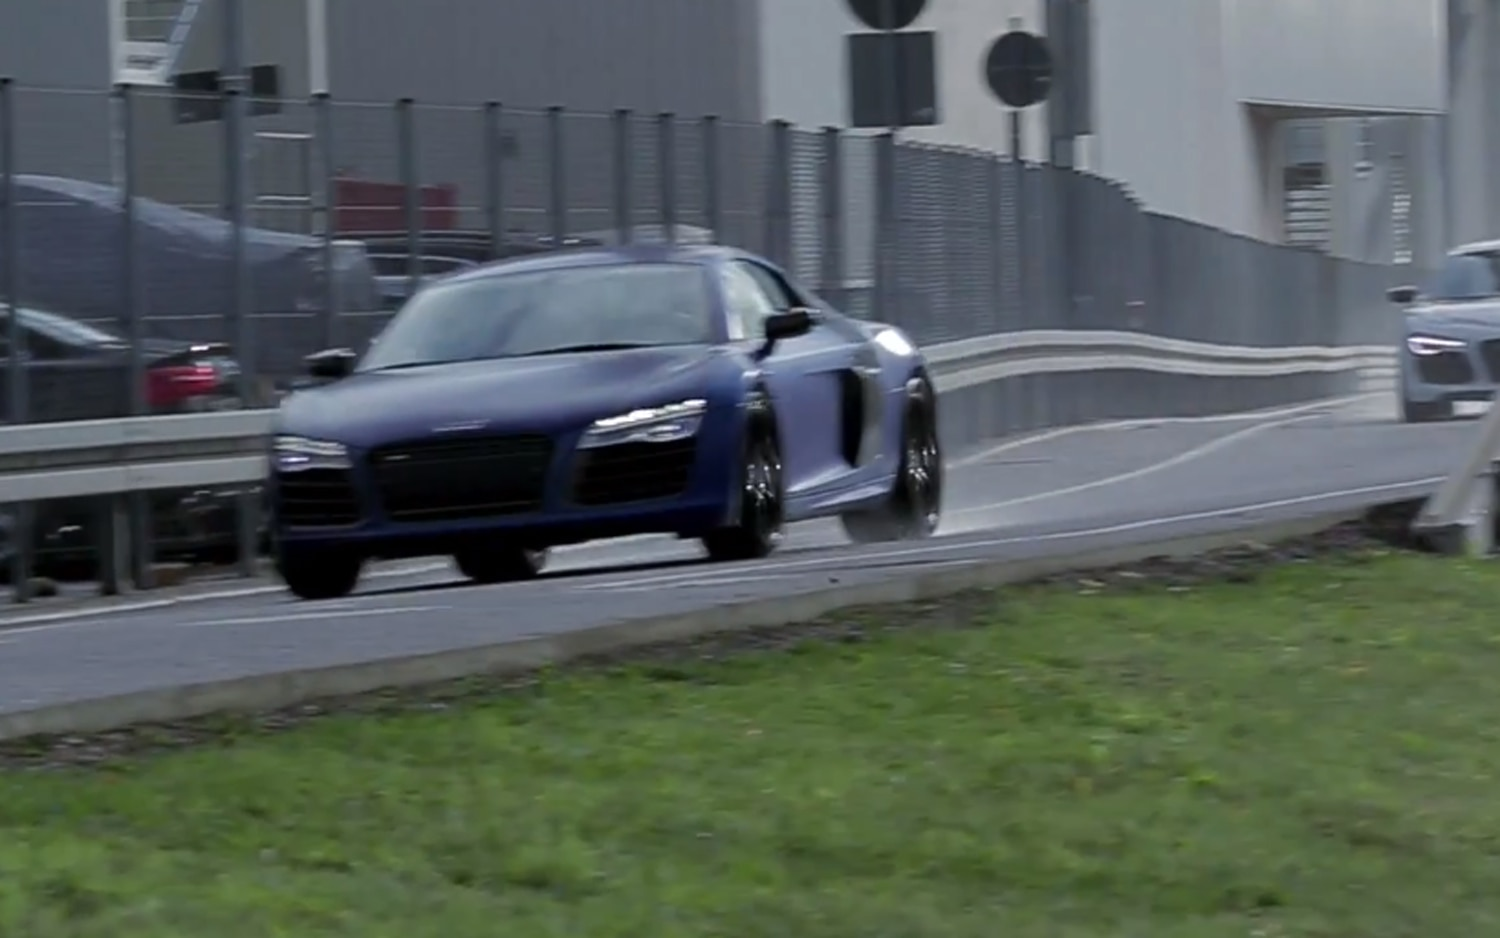 Audi R8 Supercar On Test Drive Outside Of Quattro GmbH Facility1